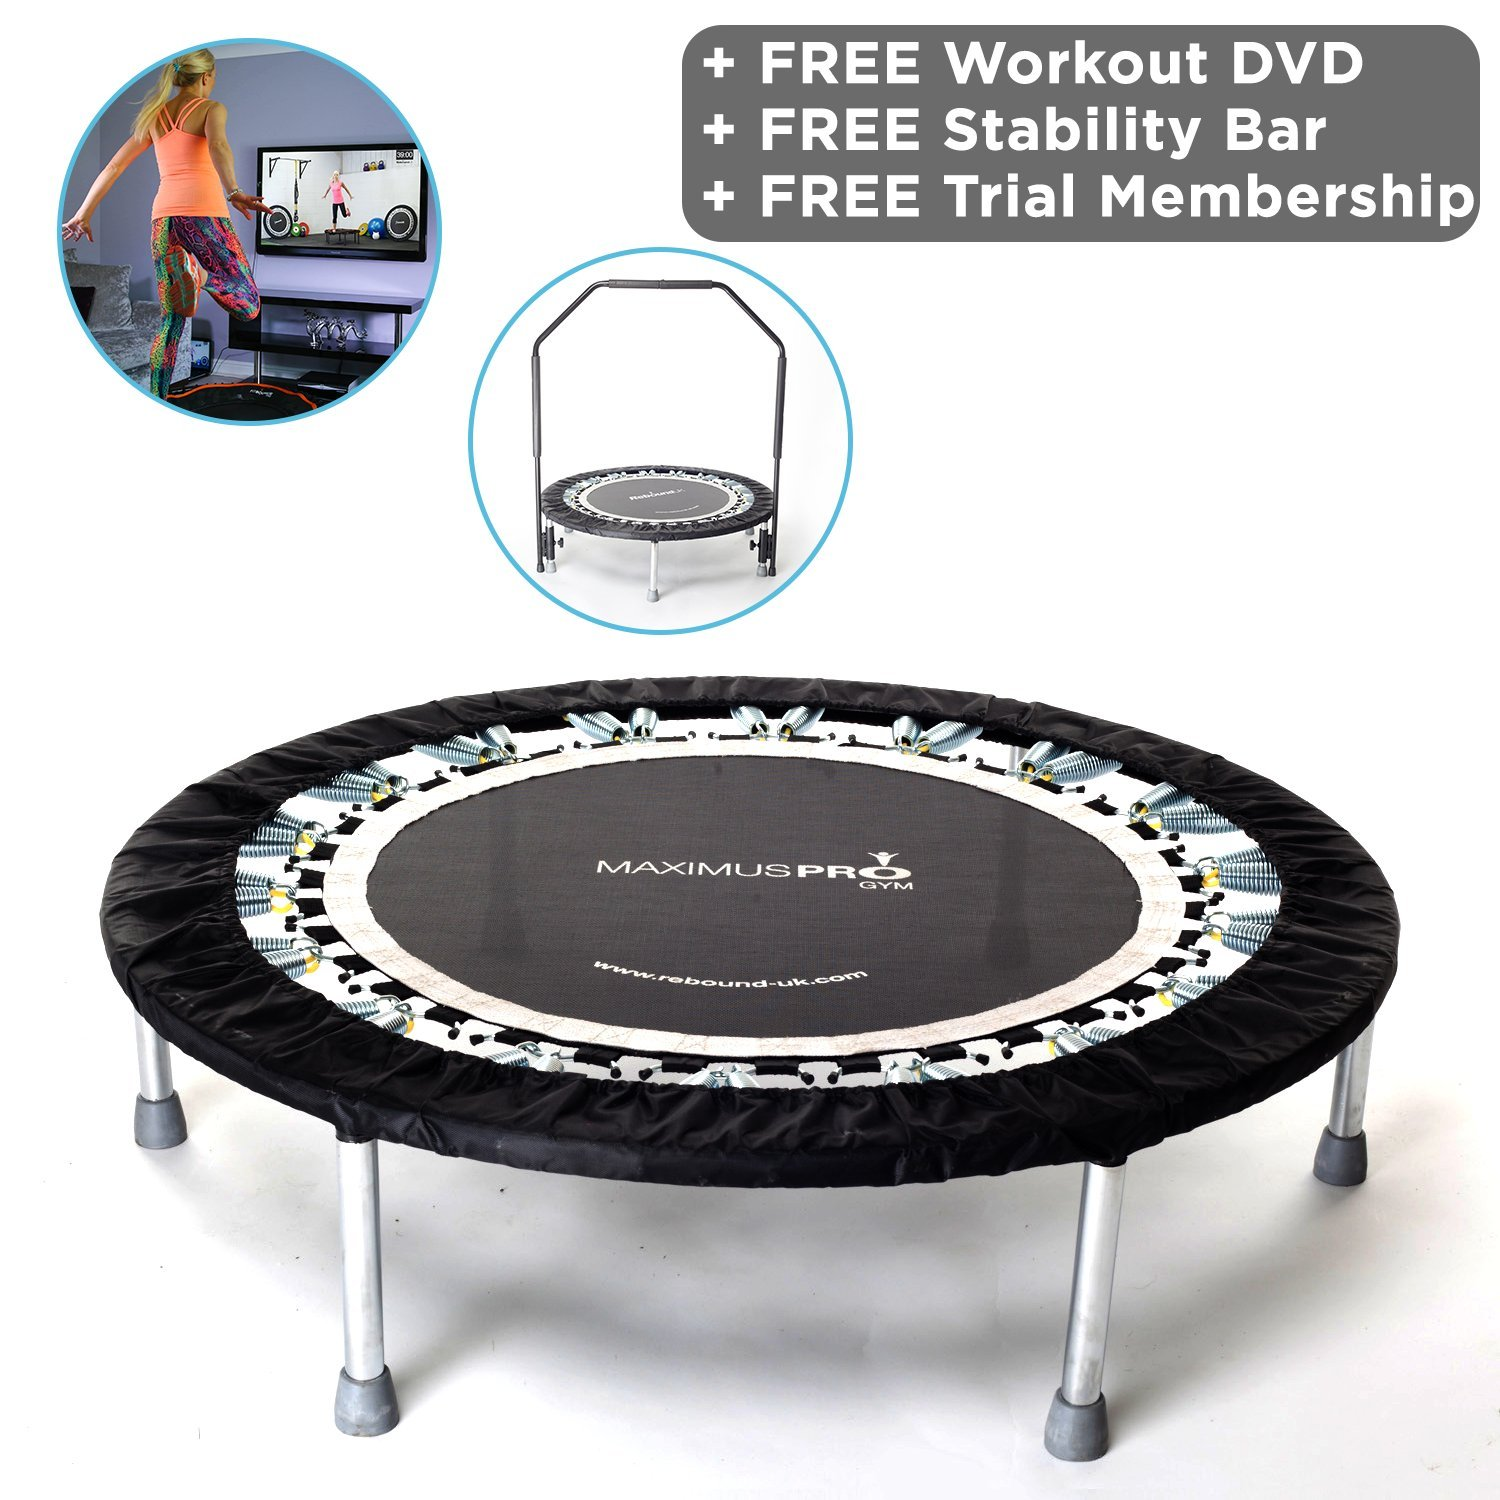 MaXimus Life Pro Gym Rebounder Package Includes Compilation DVD and Handle Bar by MXL MaXimus Life